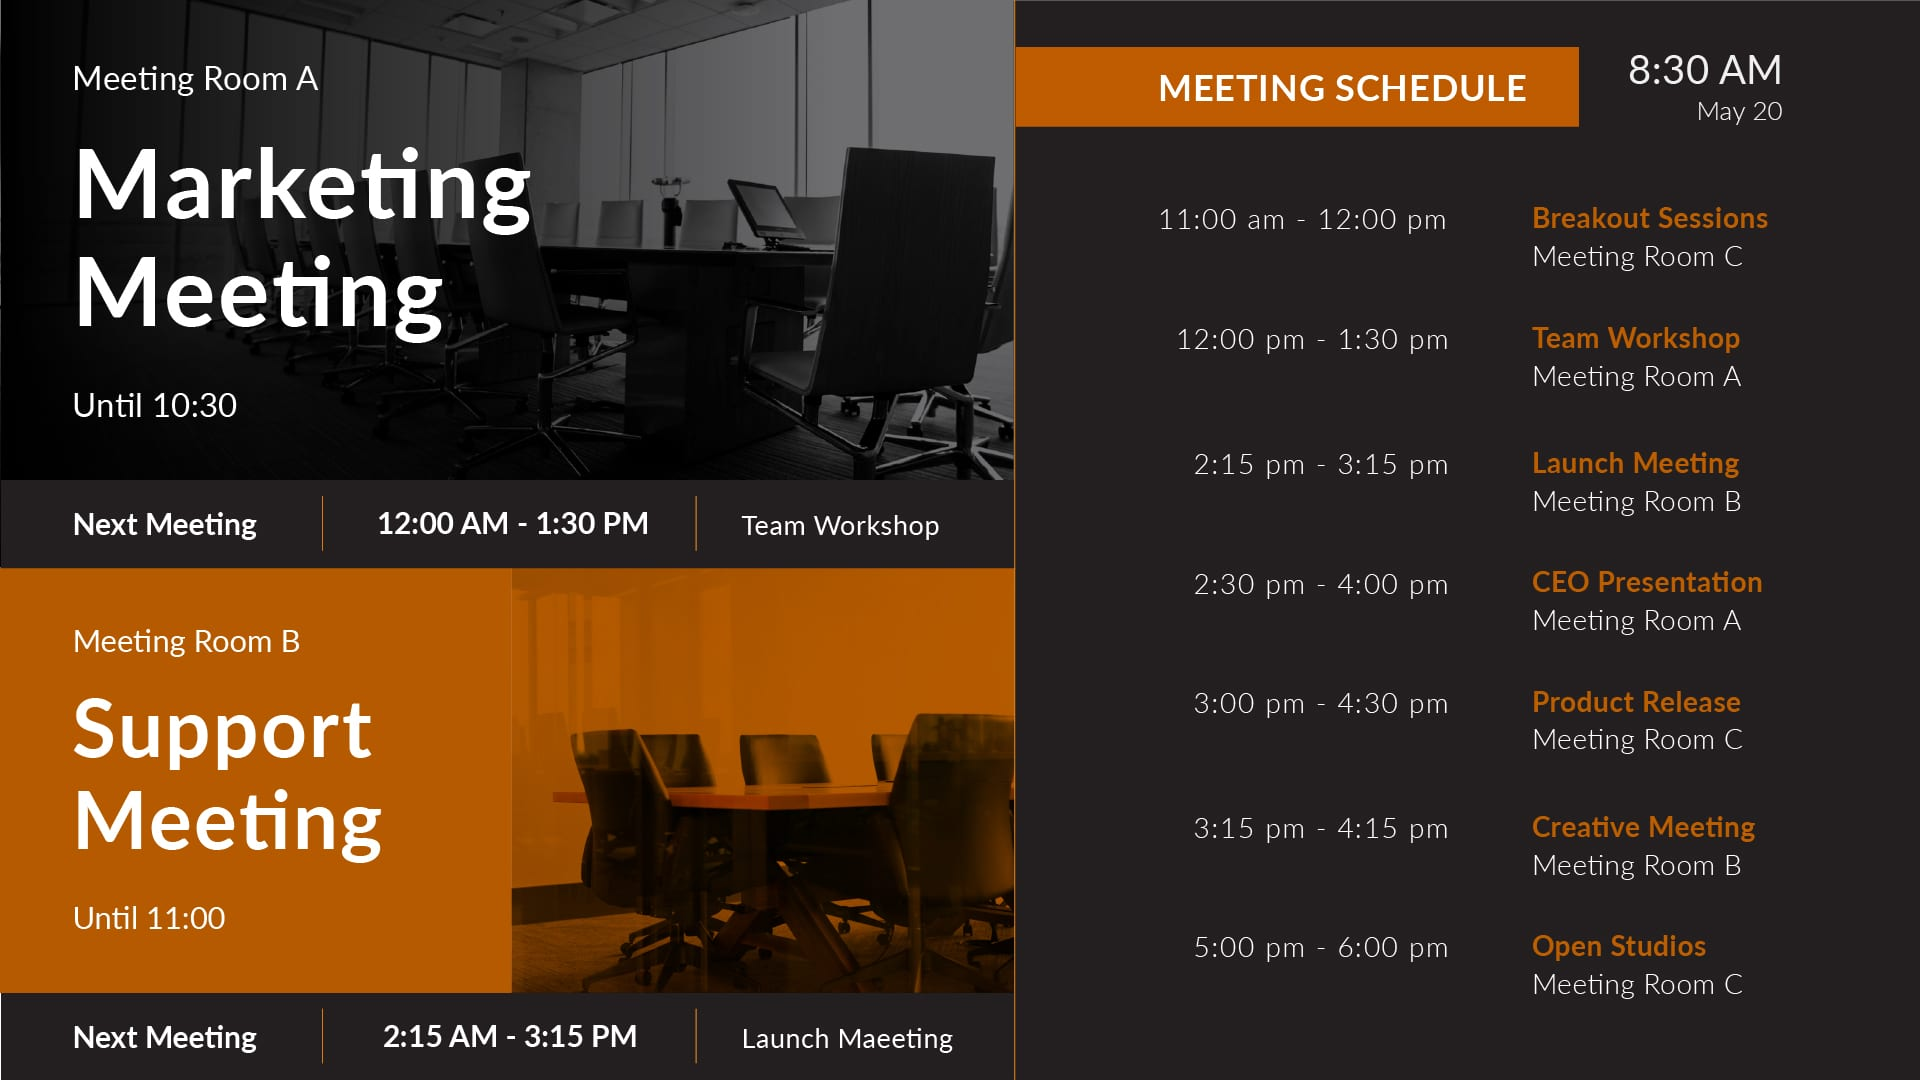 meeting room schedule and occupied rooms